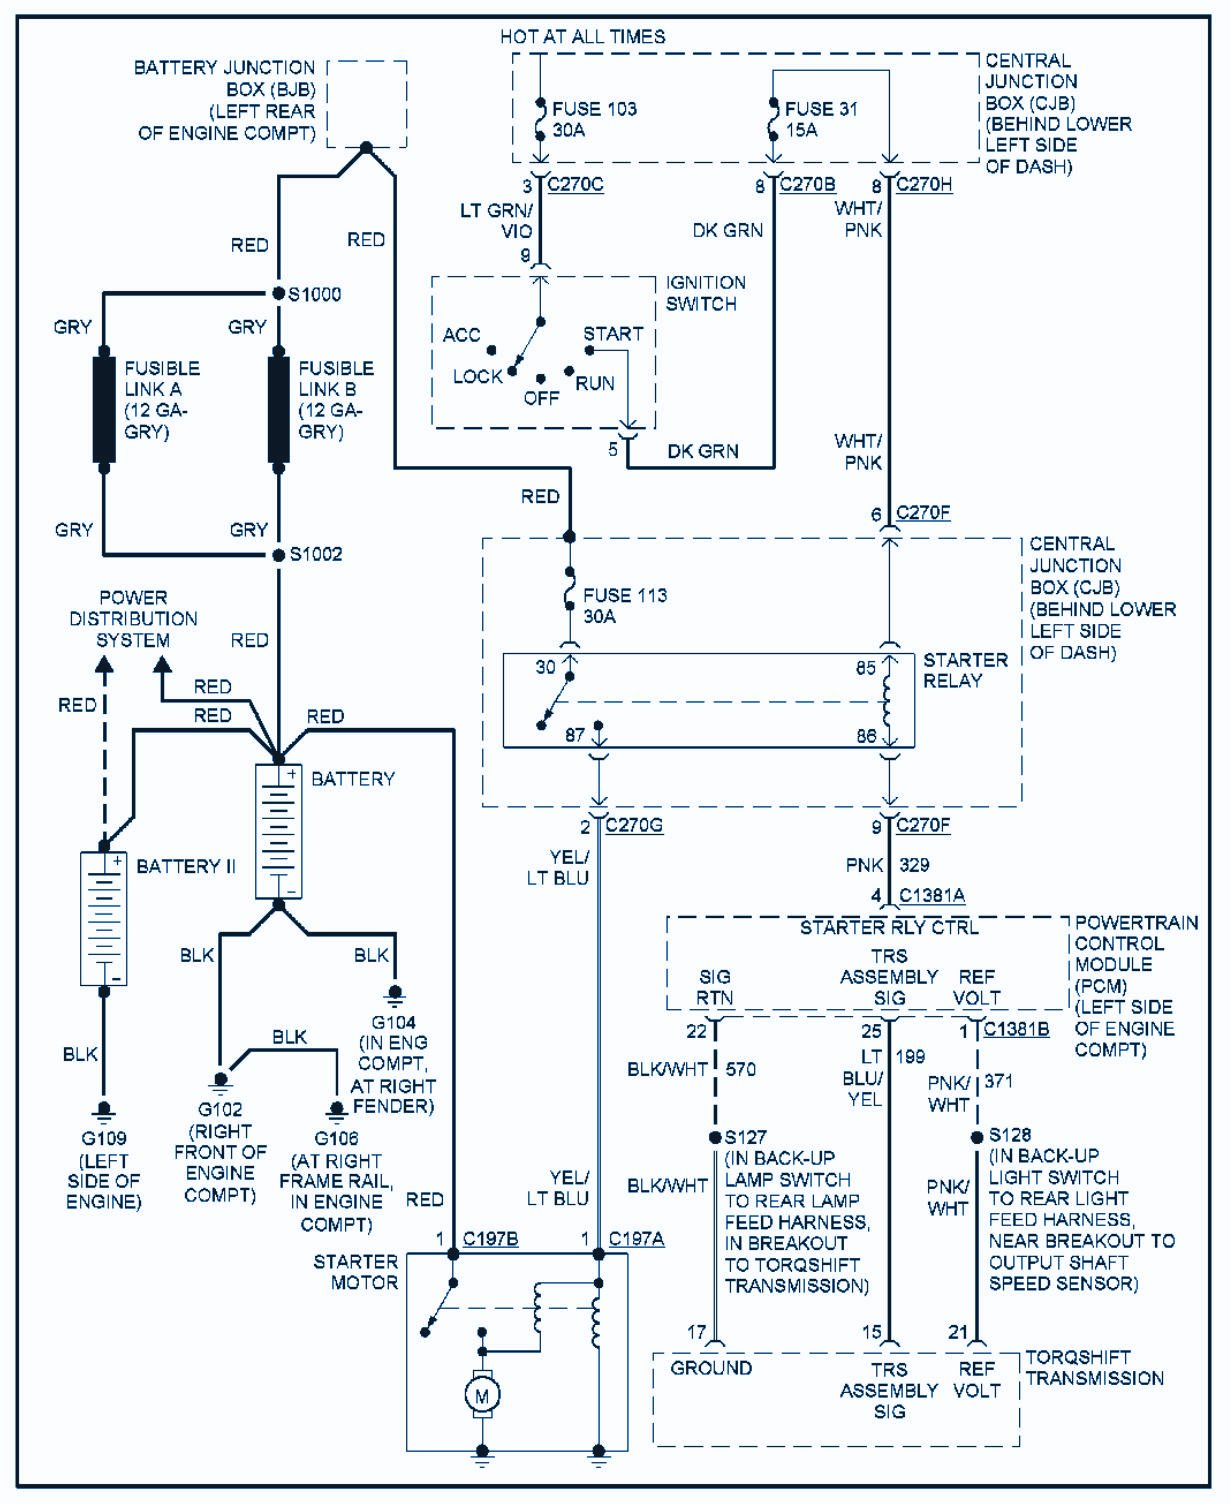 Ford Wiring Auto Electrical Diagram 2008 Crown Victoria Transmission F